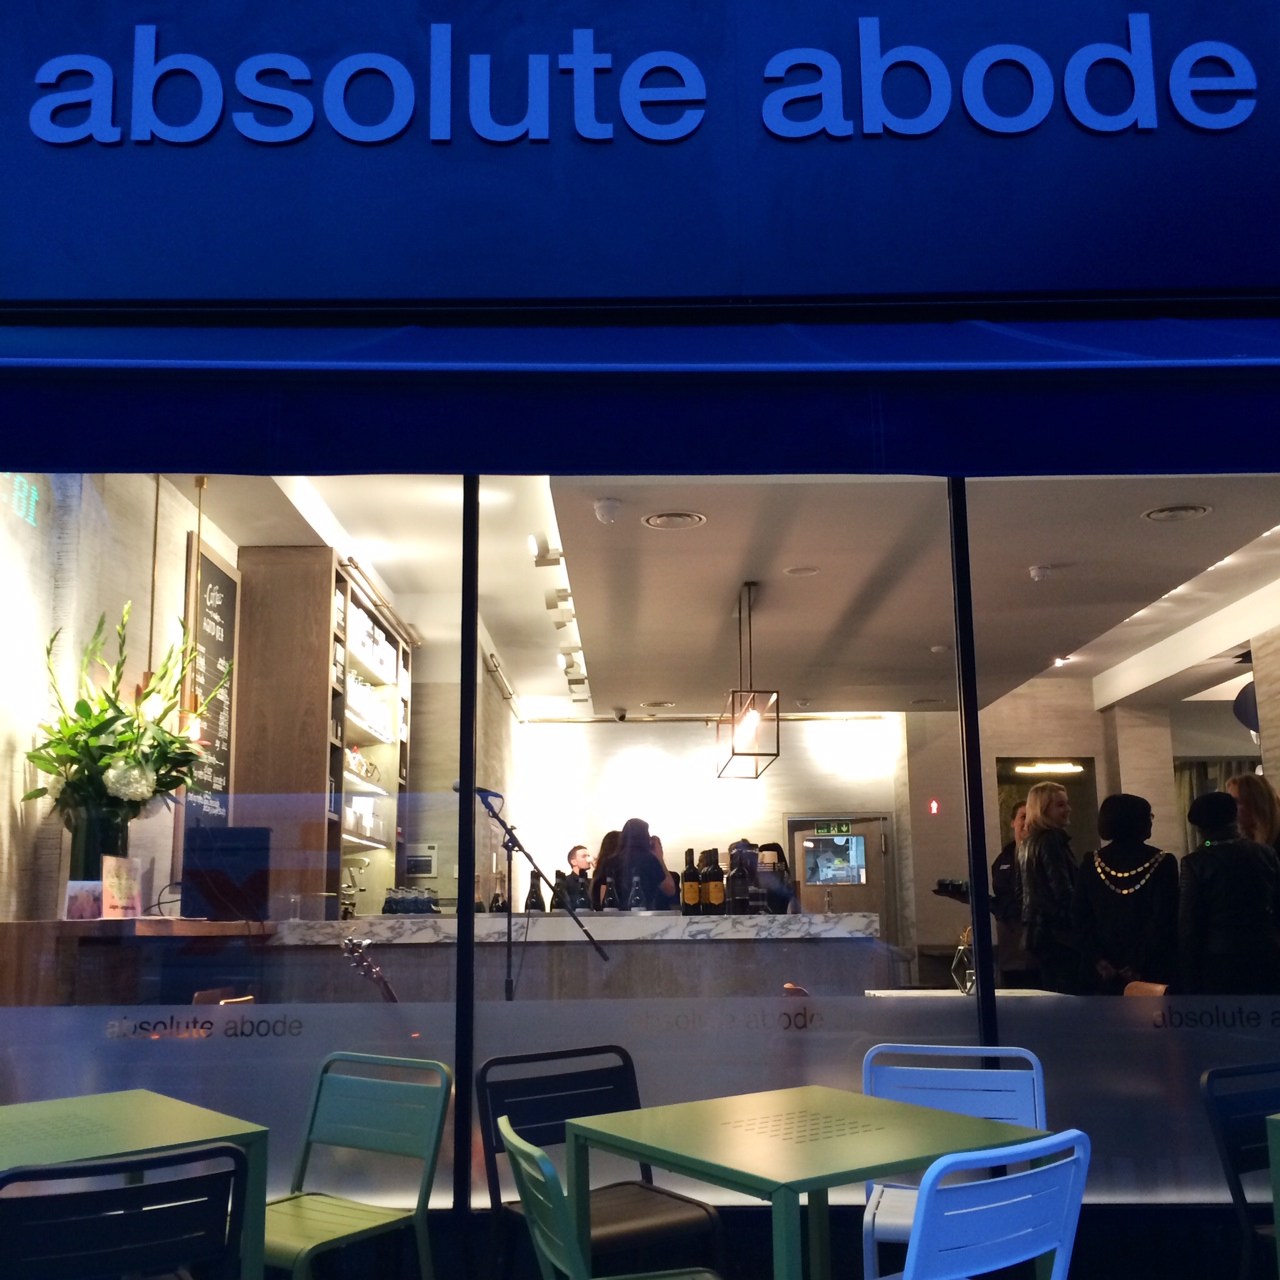 ABSOLUTE ABODE